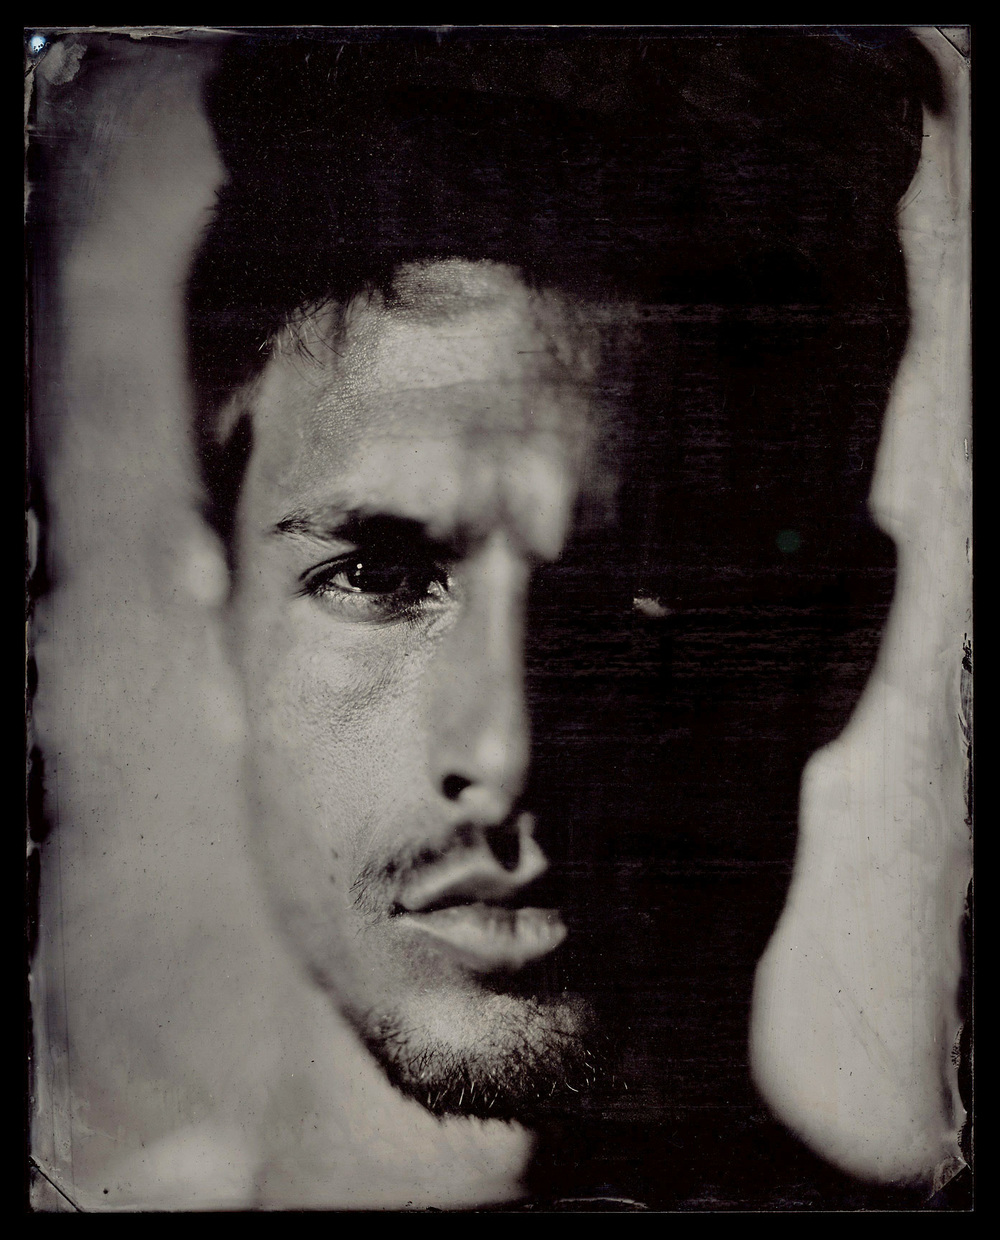 photographer-jamesweber-wetplate-portraits-00264.jpg